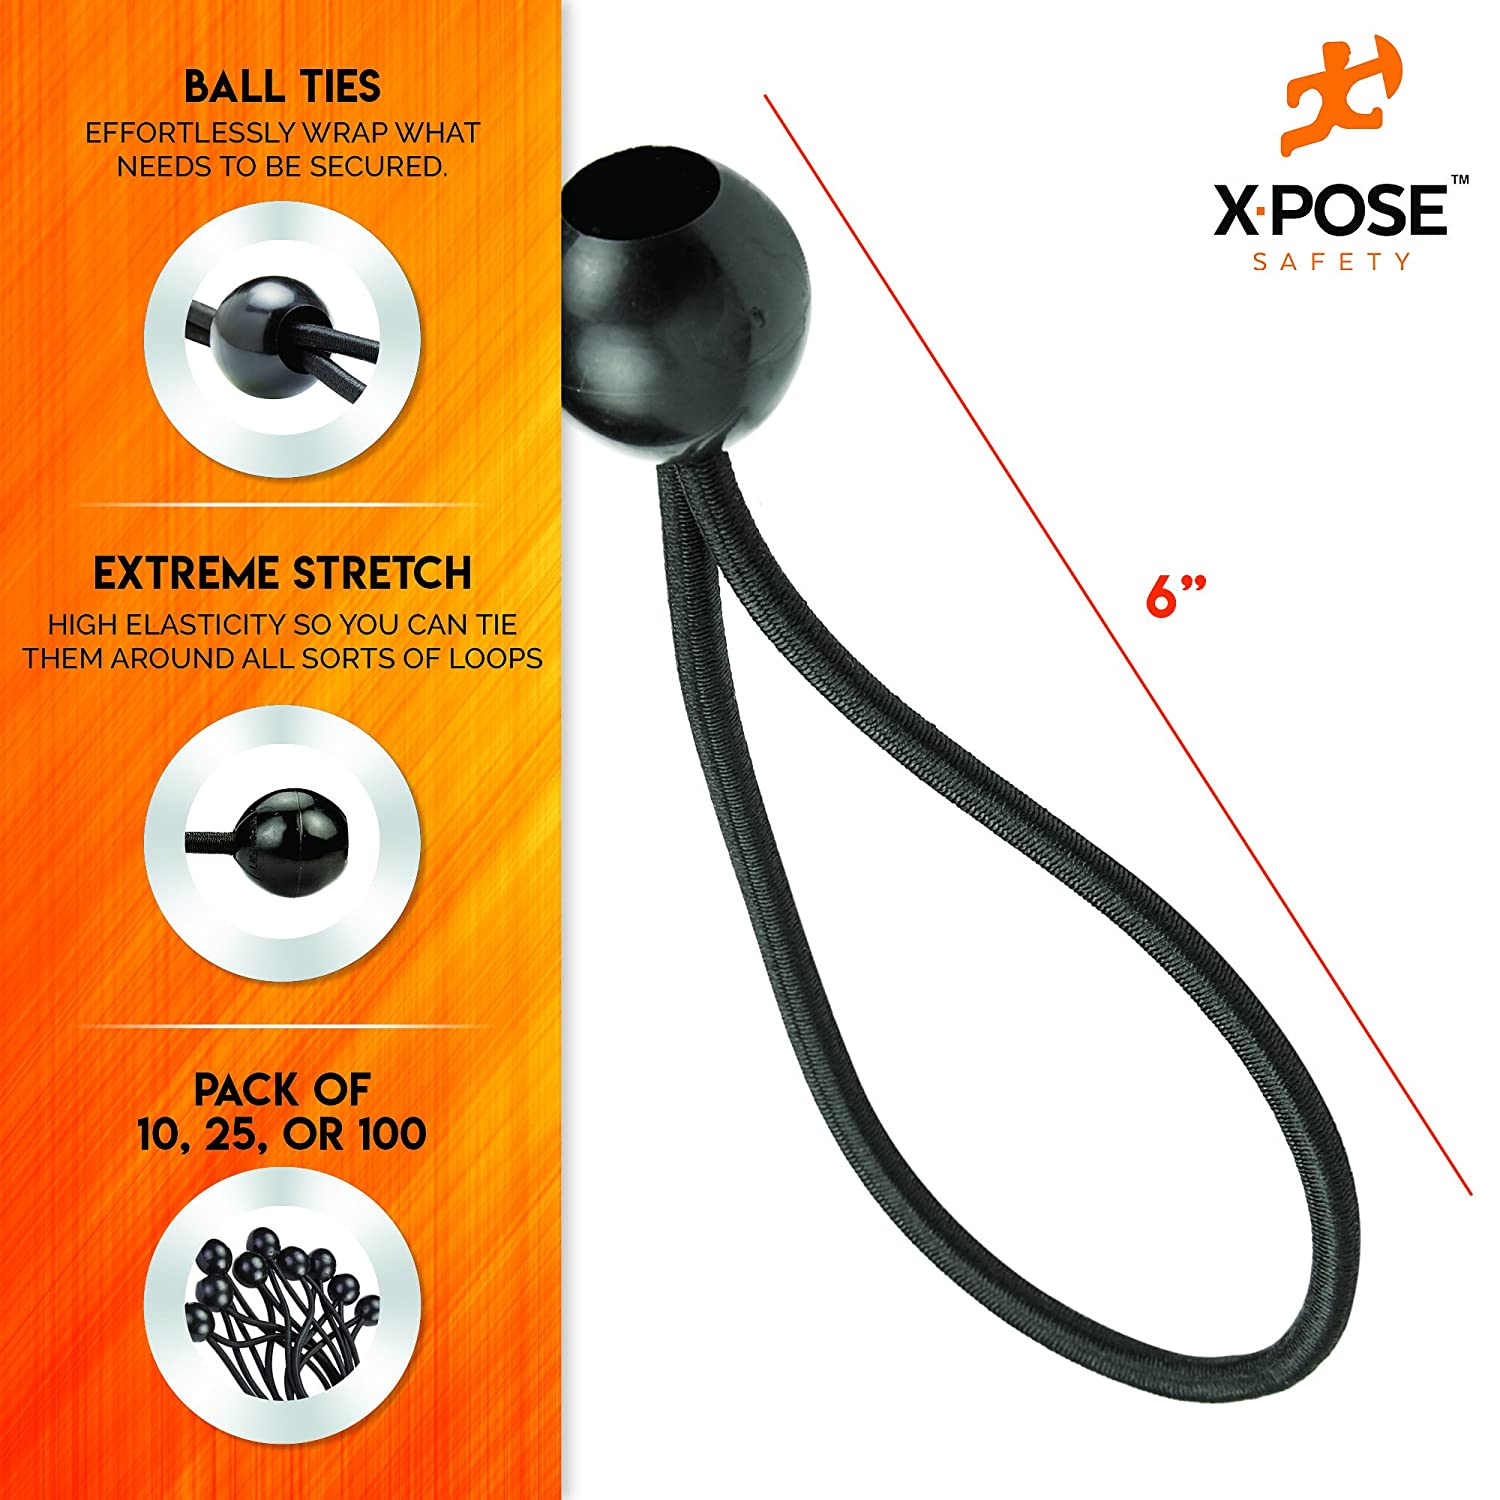 "Tarps Xpose Safety Bungee Ball Cords Cable Organization Heavy Duty Black Stretch Rope with Ball Ties for Canopies 6/"" 100 Pack Walls"